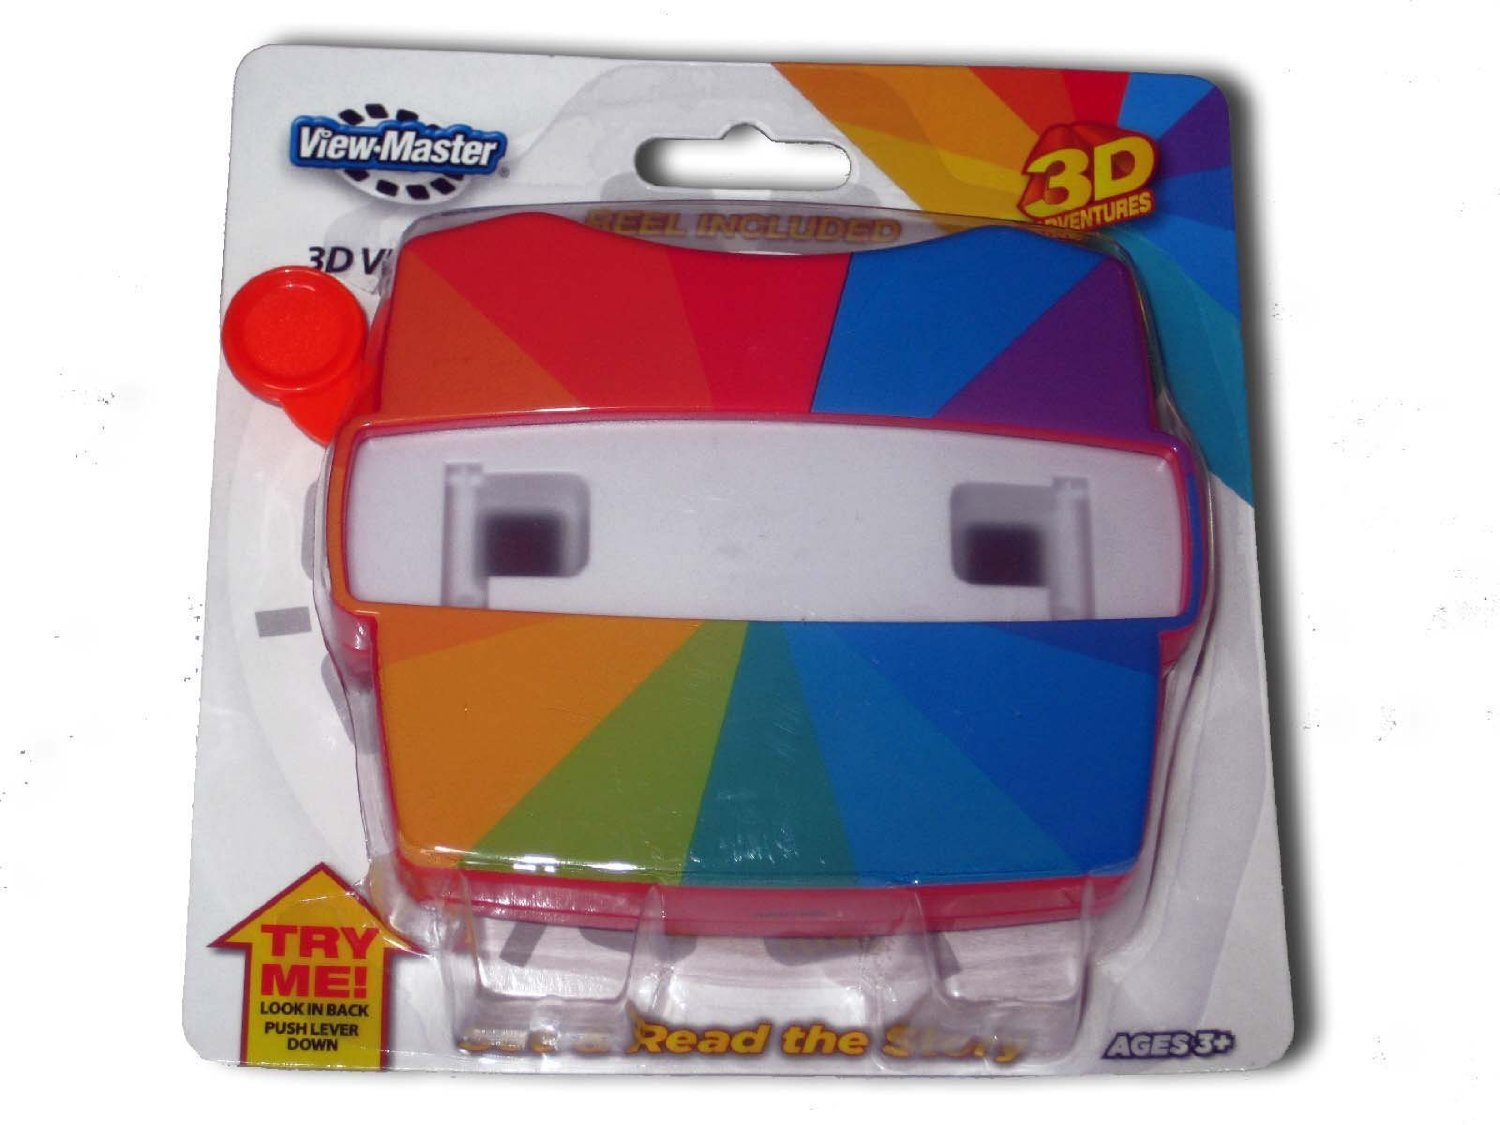 ViewMaster 3D Viewer and Collector Reel, Classic Red Basic Fun